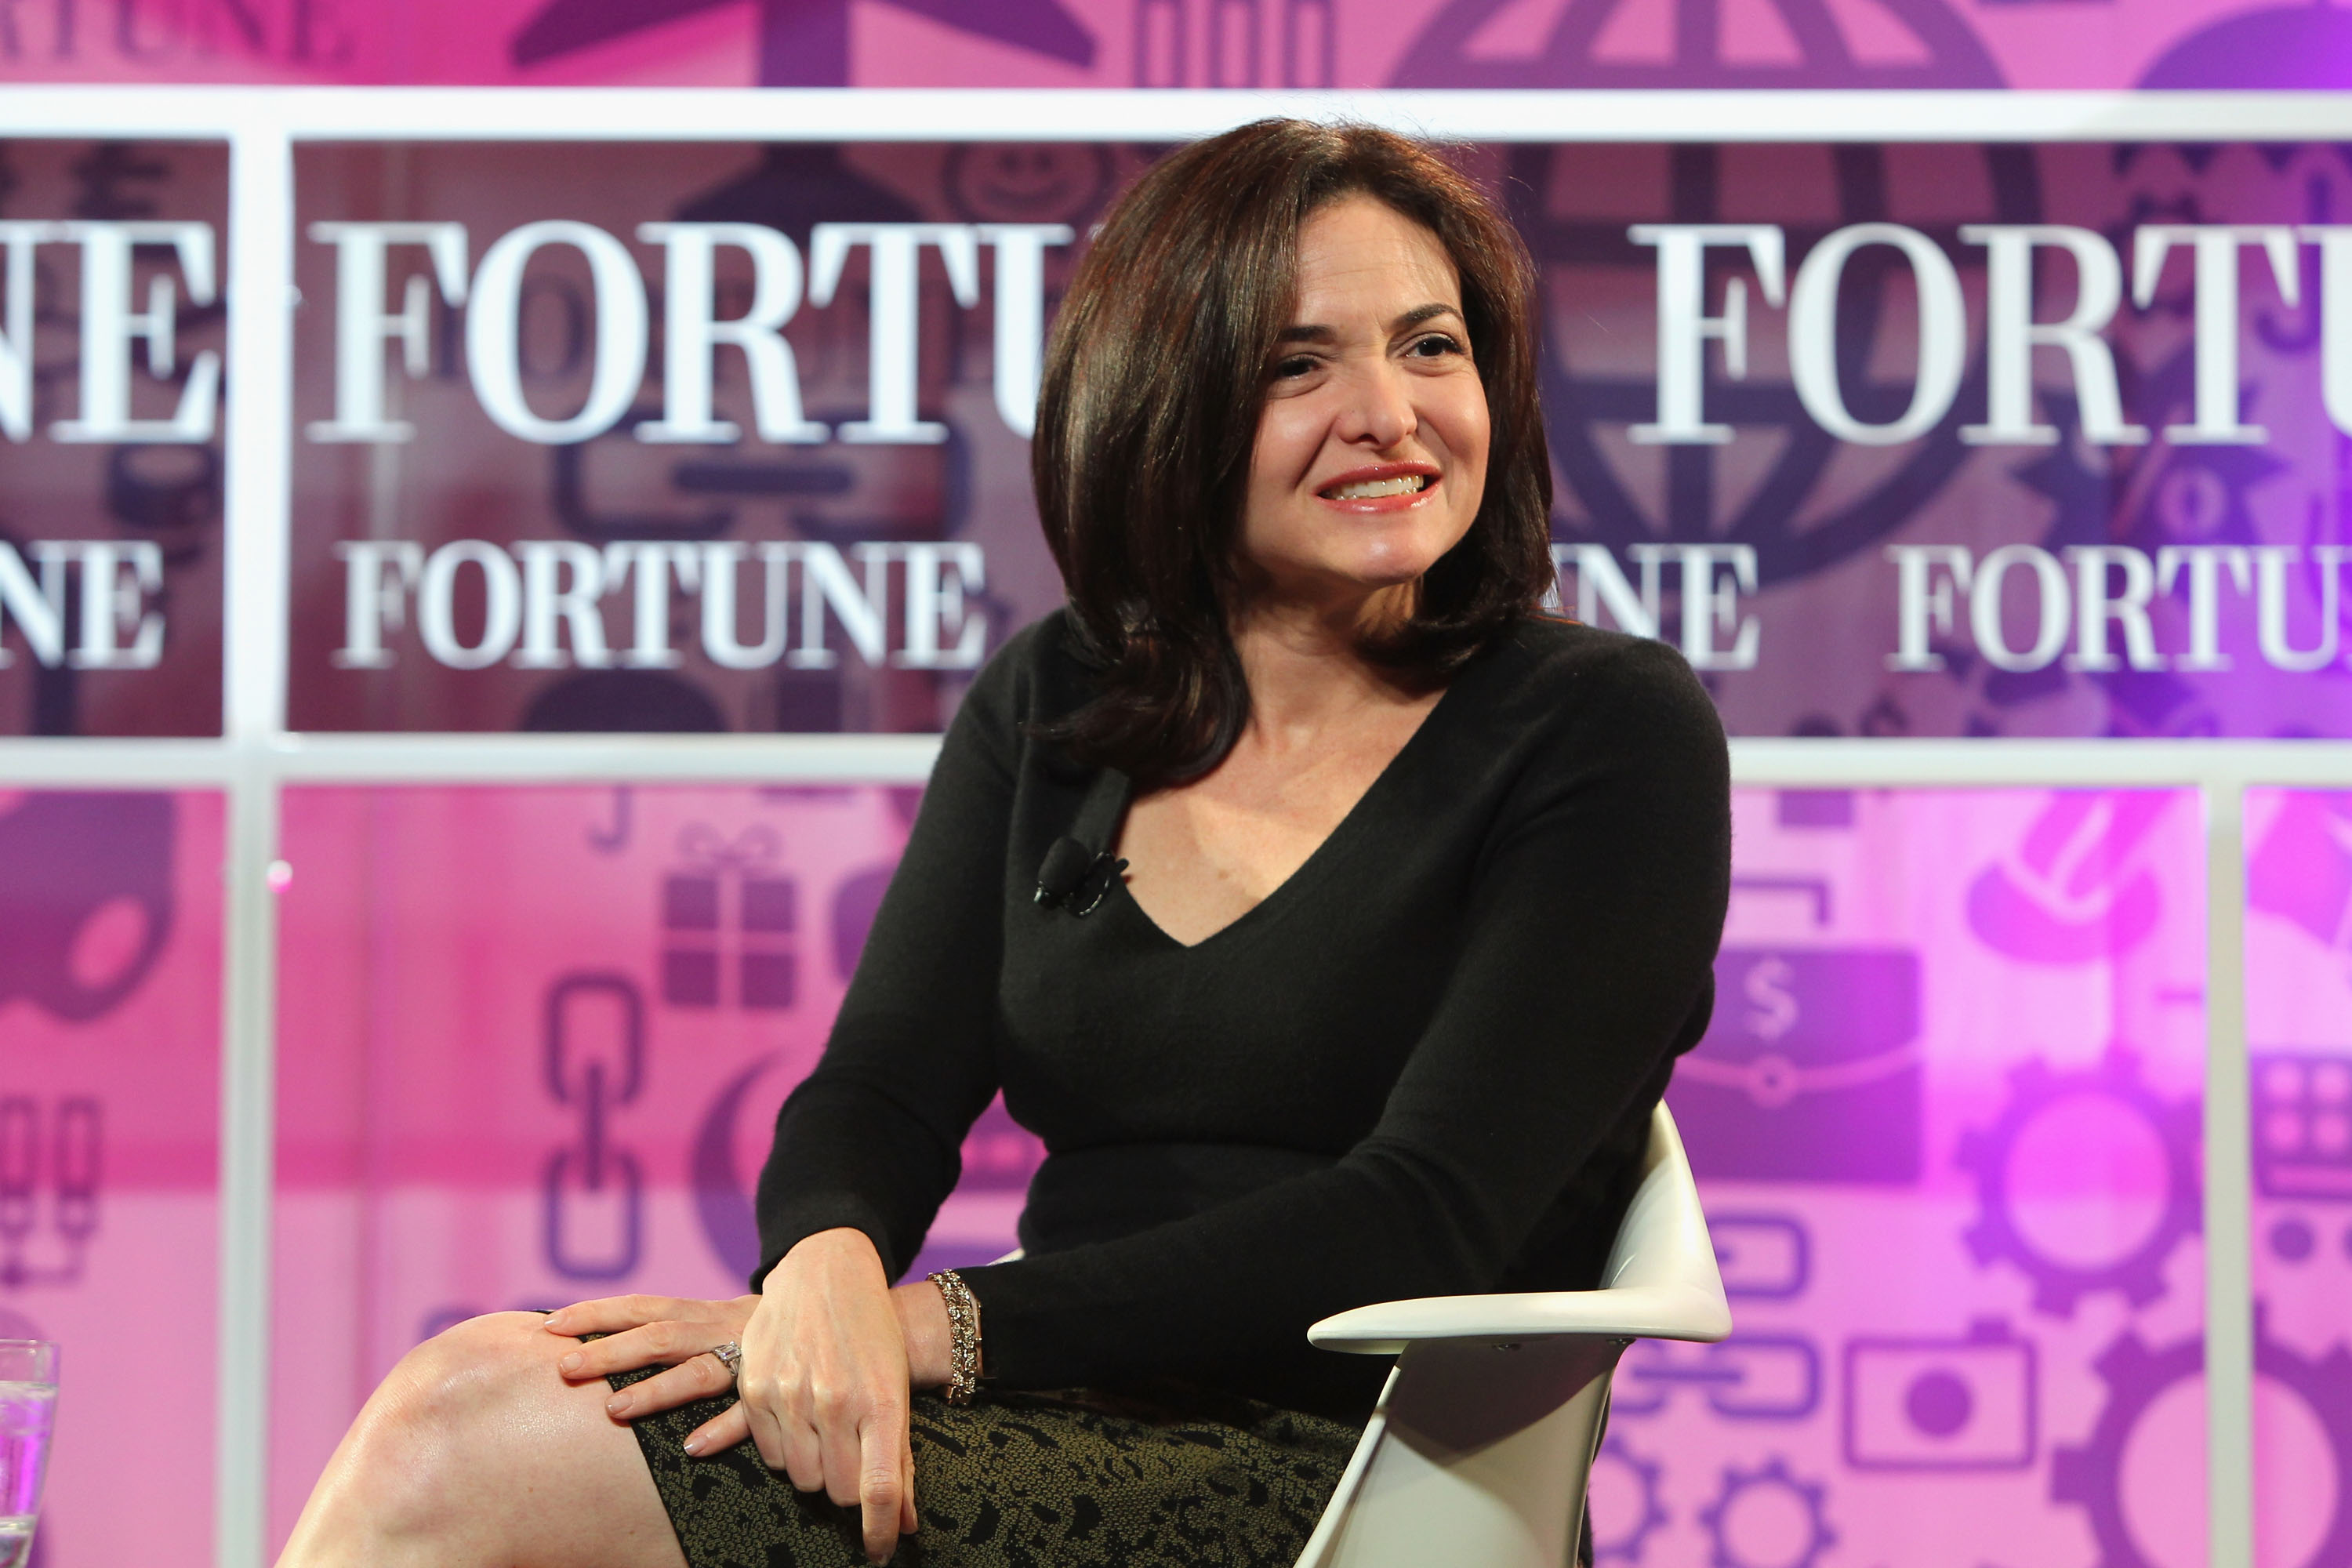 Chief operating officer of Facebook Sheryl Sandberg speaks onstage at the FORTUNE Most Powerful Women Summit on Oct. 16, 2013 in Washington D.C.